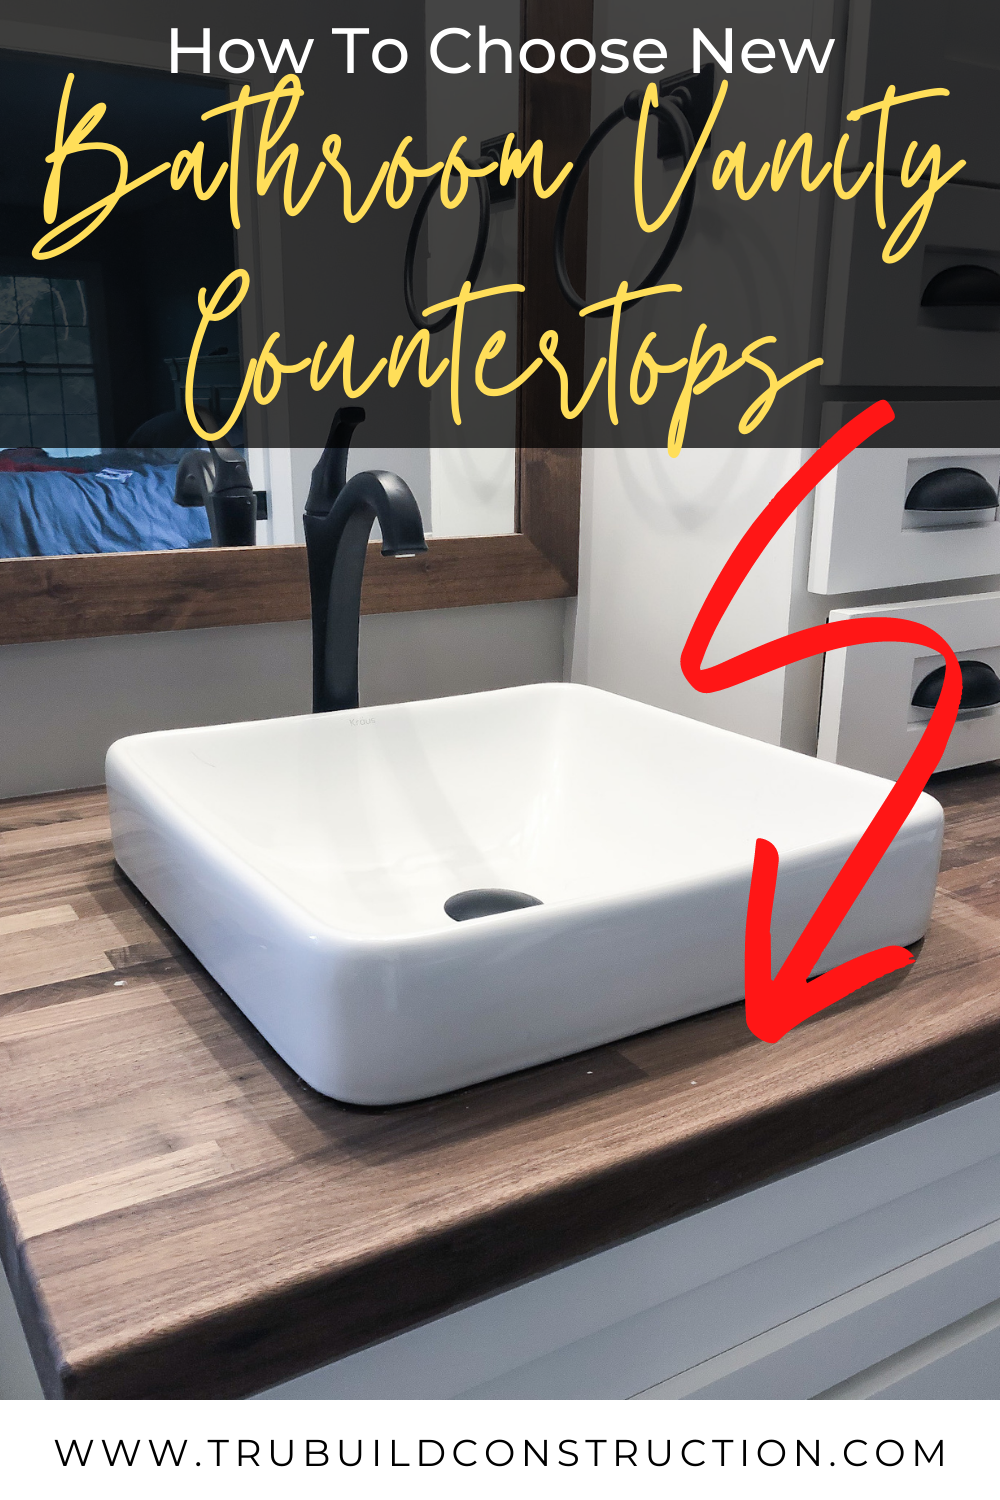 How To Get Replacement Countertops For Your Bathroom Vanity Trubuild Construction